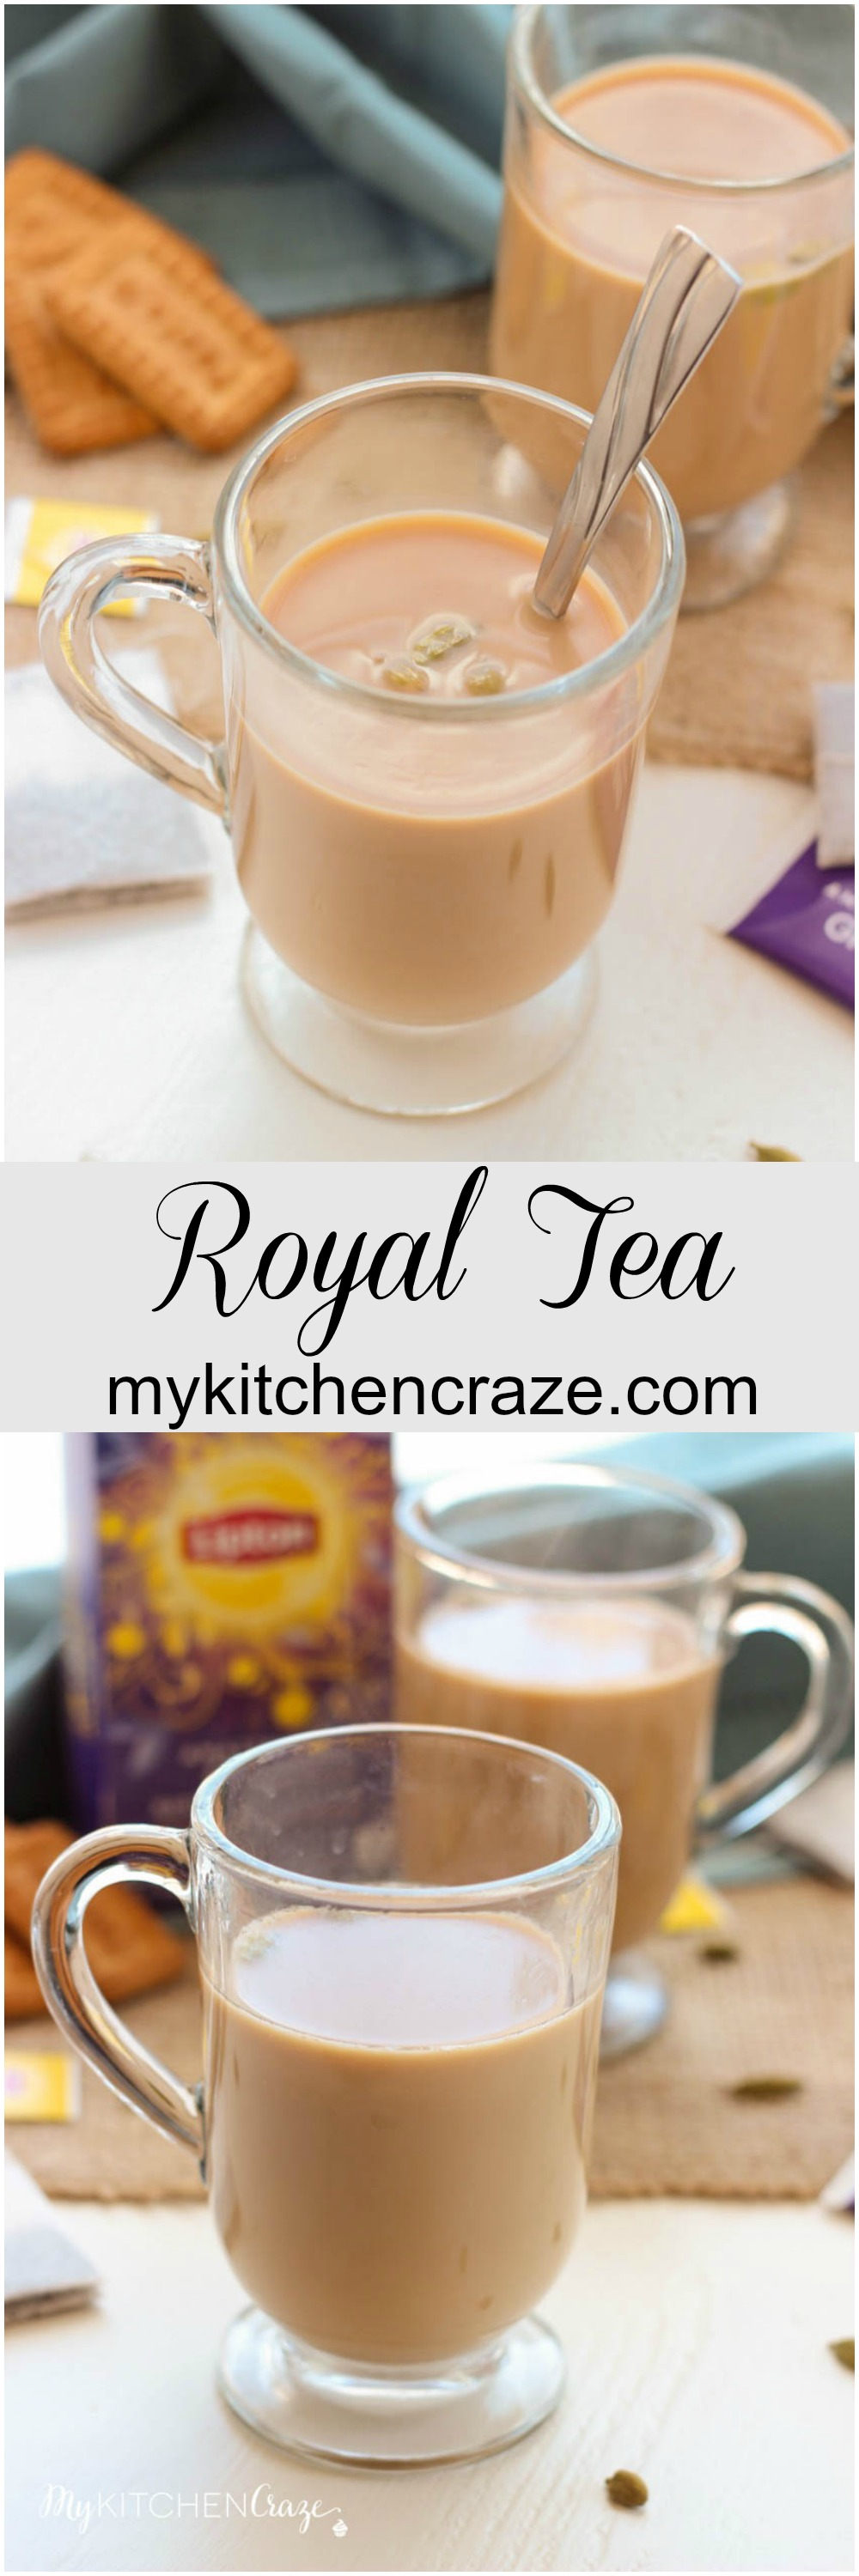 Royal Tea ~ mykitchencraze.com ~ Royal Tea is one of those teas that will leave you all warm and fuzzy inside. Plus it tastes delicious!